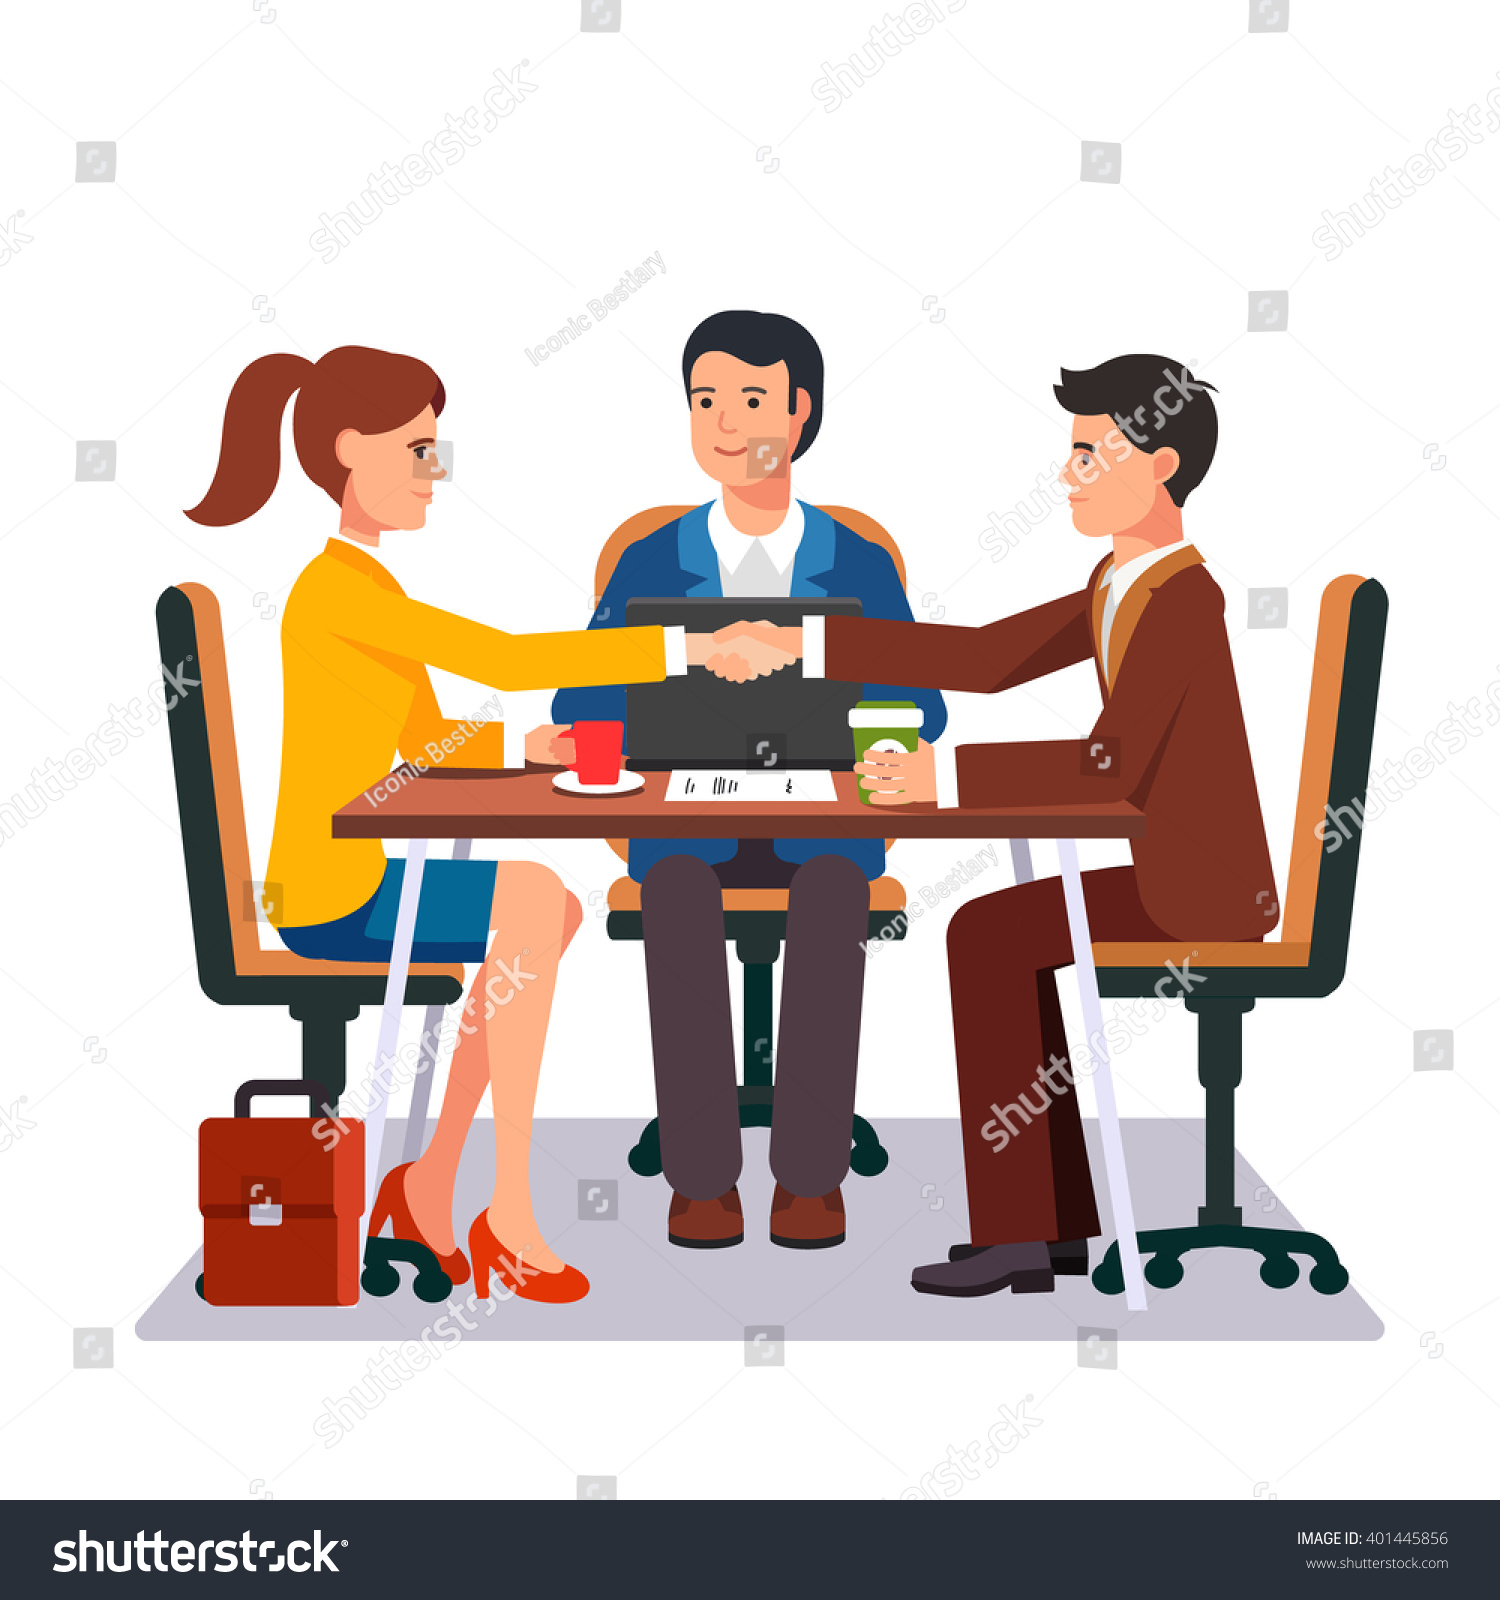 american negotiation style What are the different negotiation styles there are varied styles in business negotiations the style that you choose should depend on the prevailing conditions.